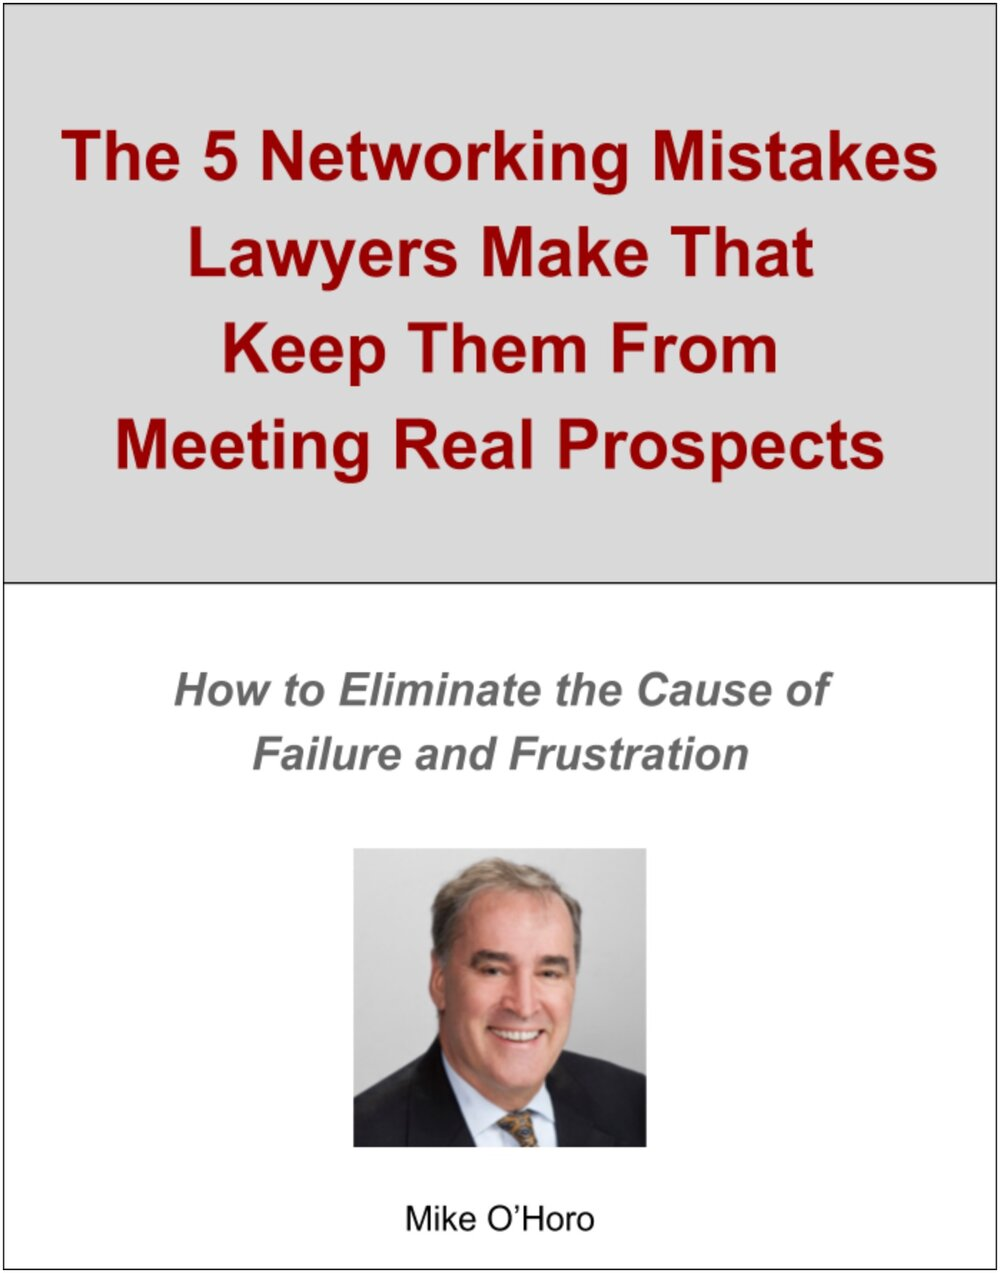 The_5_Networking_Mistakes_Lawyers_Make_That_Keep_Them_From_Meeting_Real_Prospects_-_Google_Docs.jpg